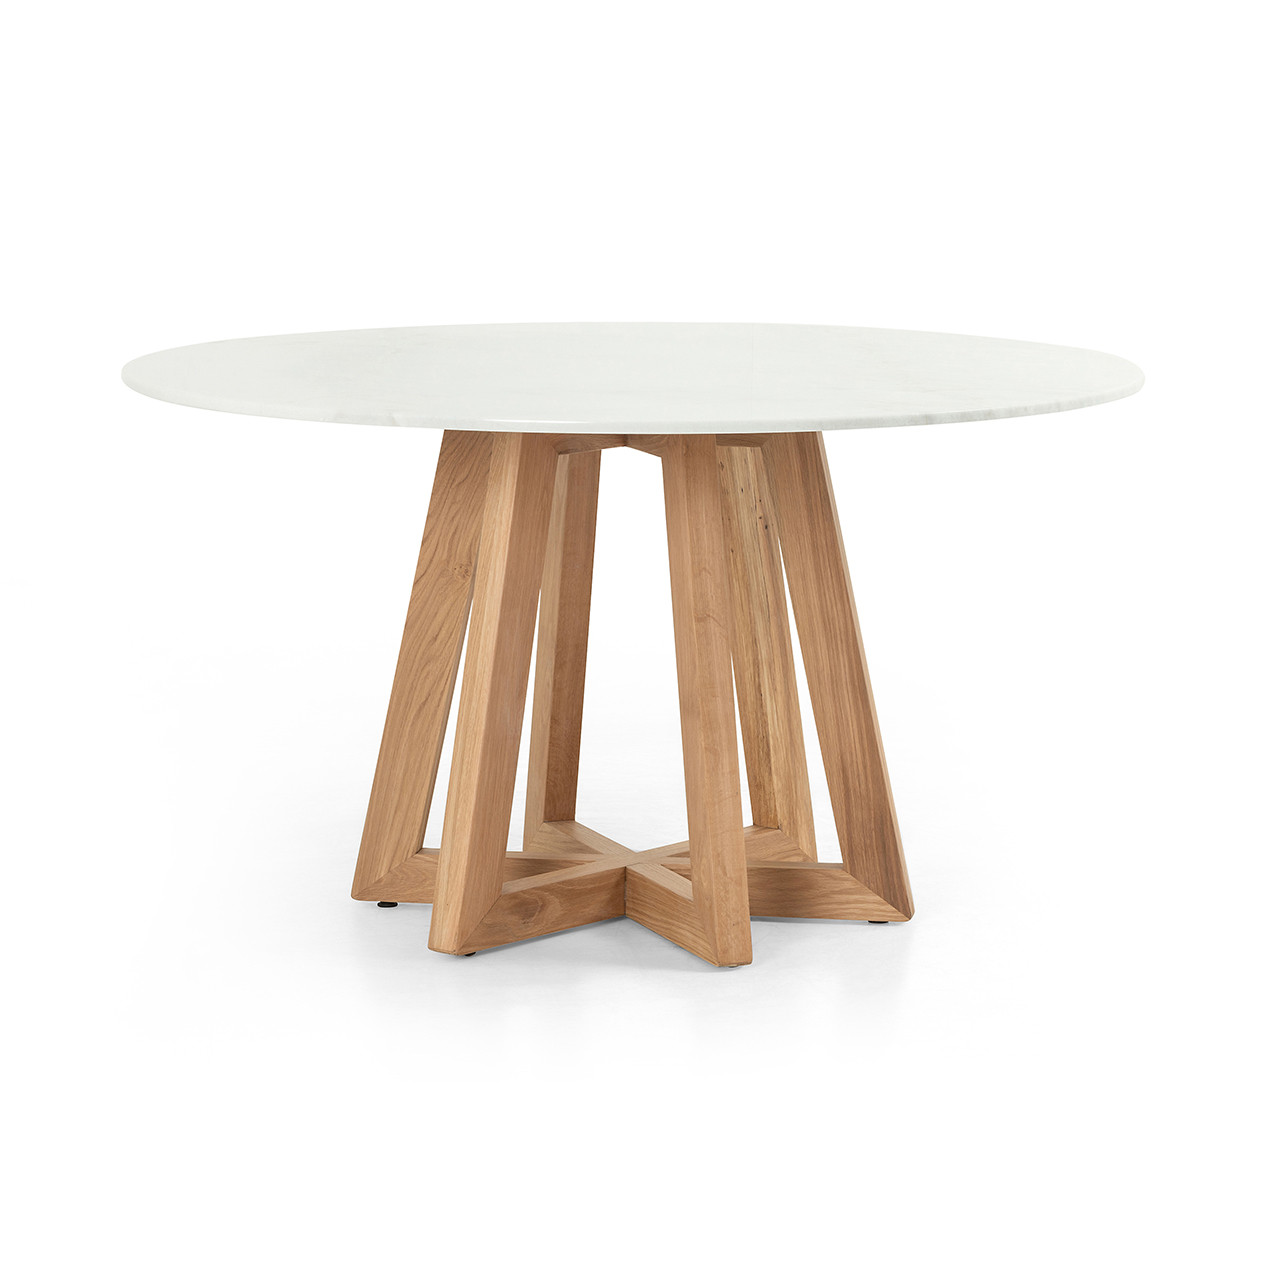 Creston Dining Table - White Marble